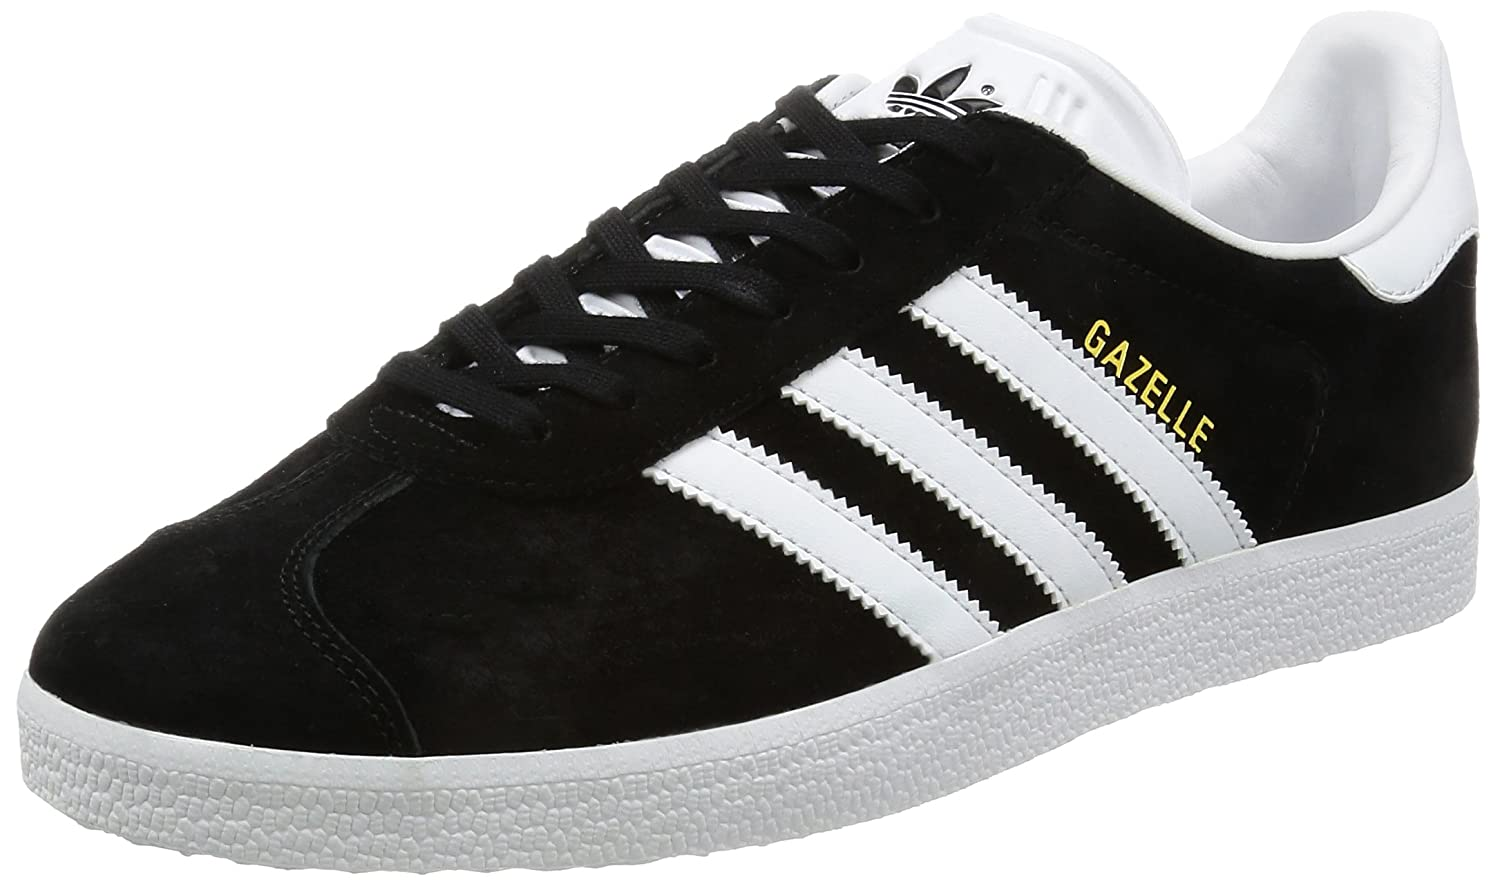 adidas Unisex Adults\u0027 Gazelle Low-Top Sneakers: Amazon.co.uk: Shoes \u0026 Bags